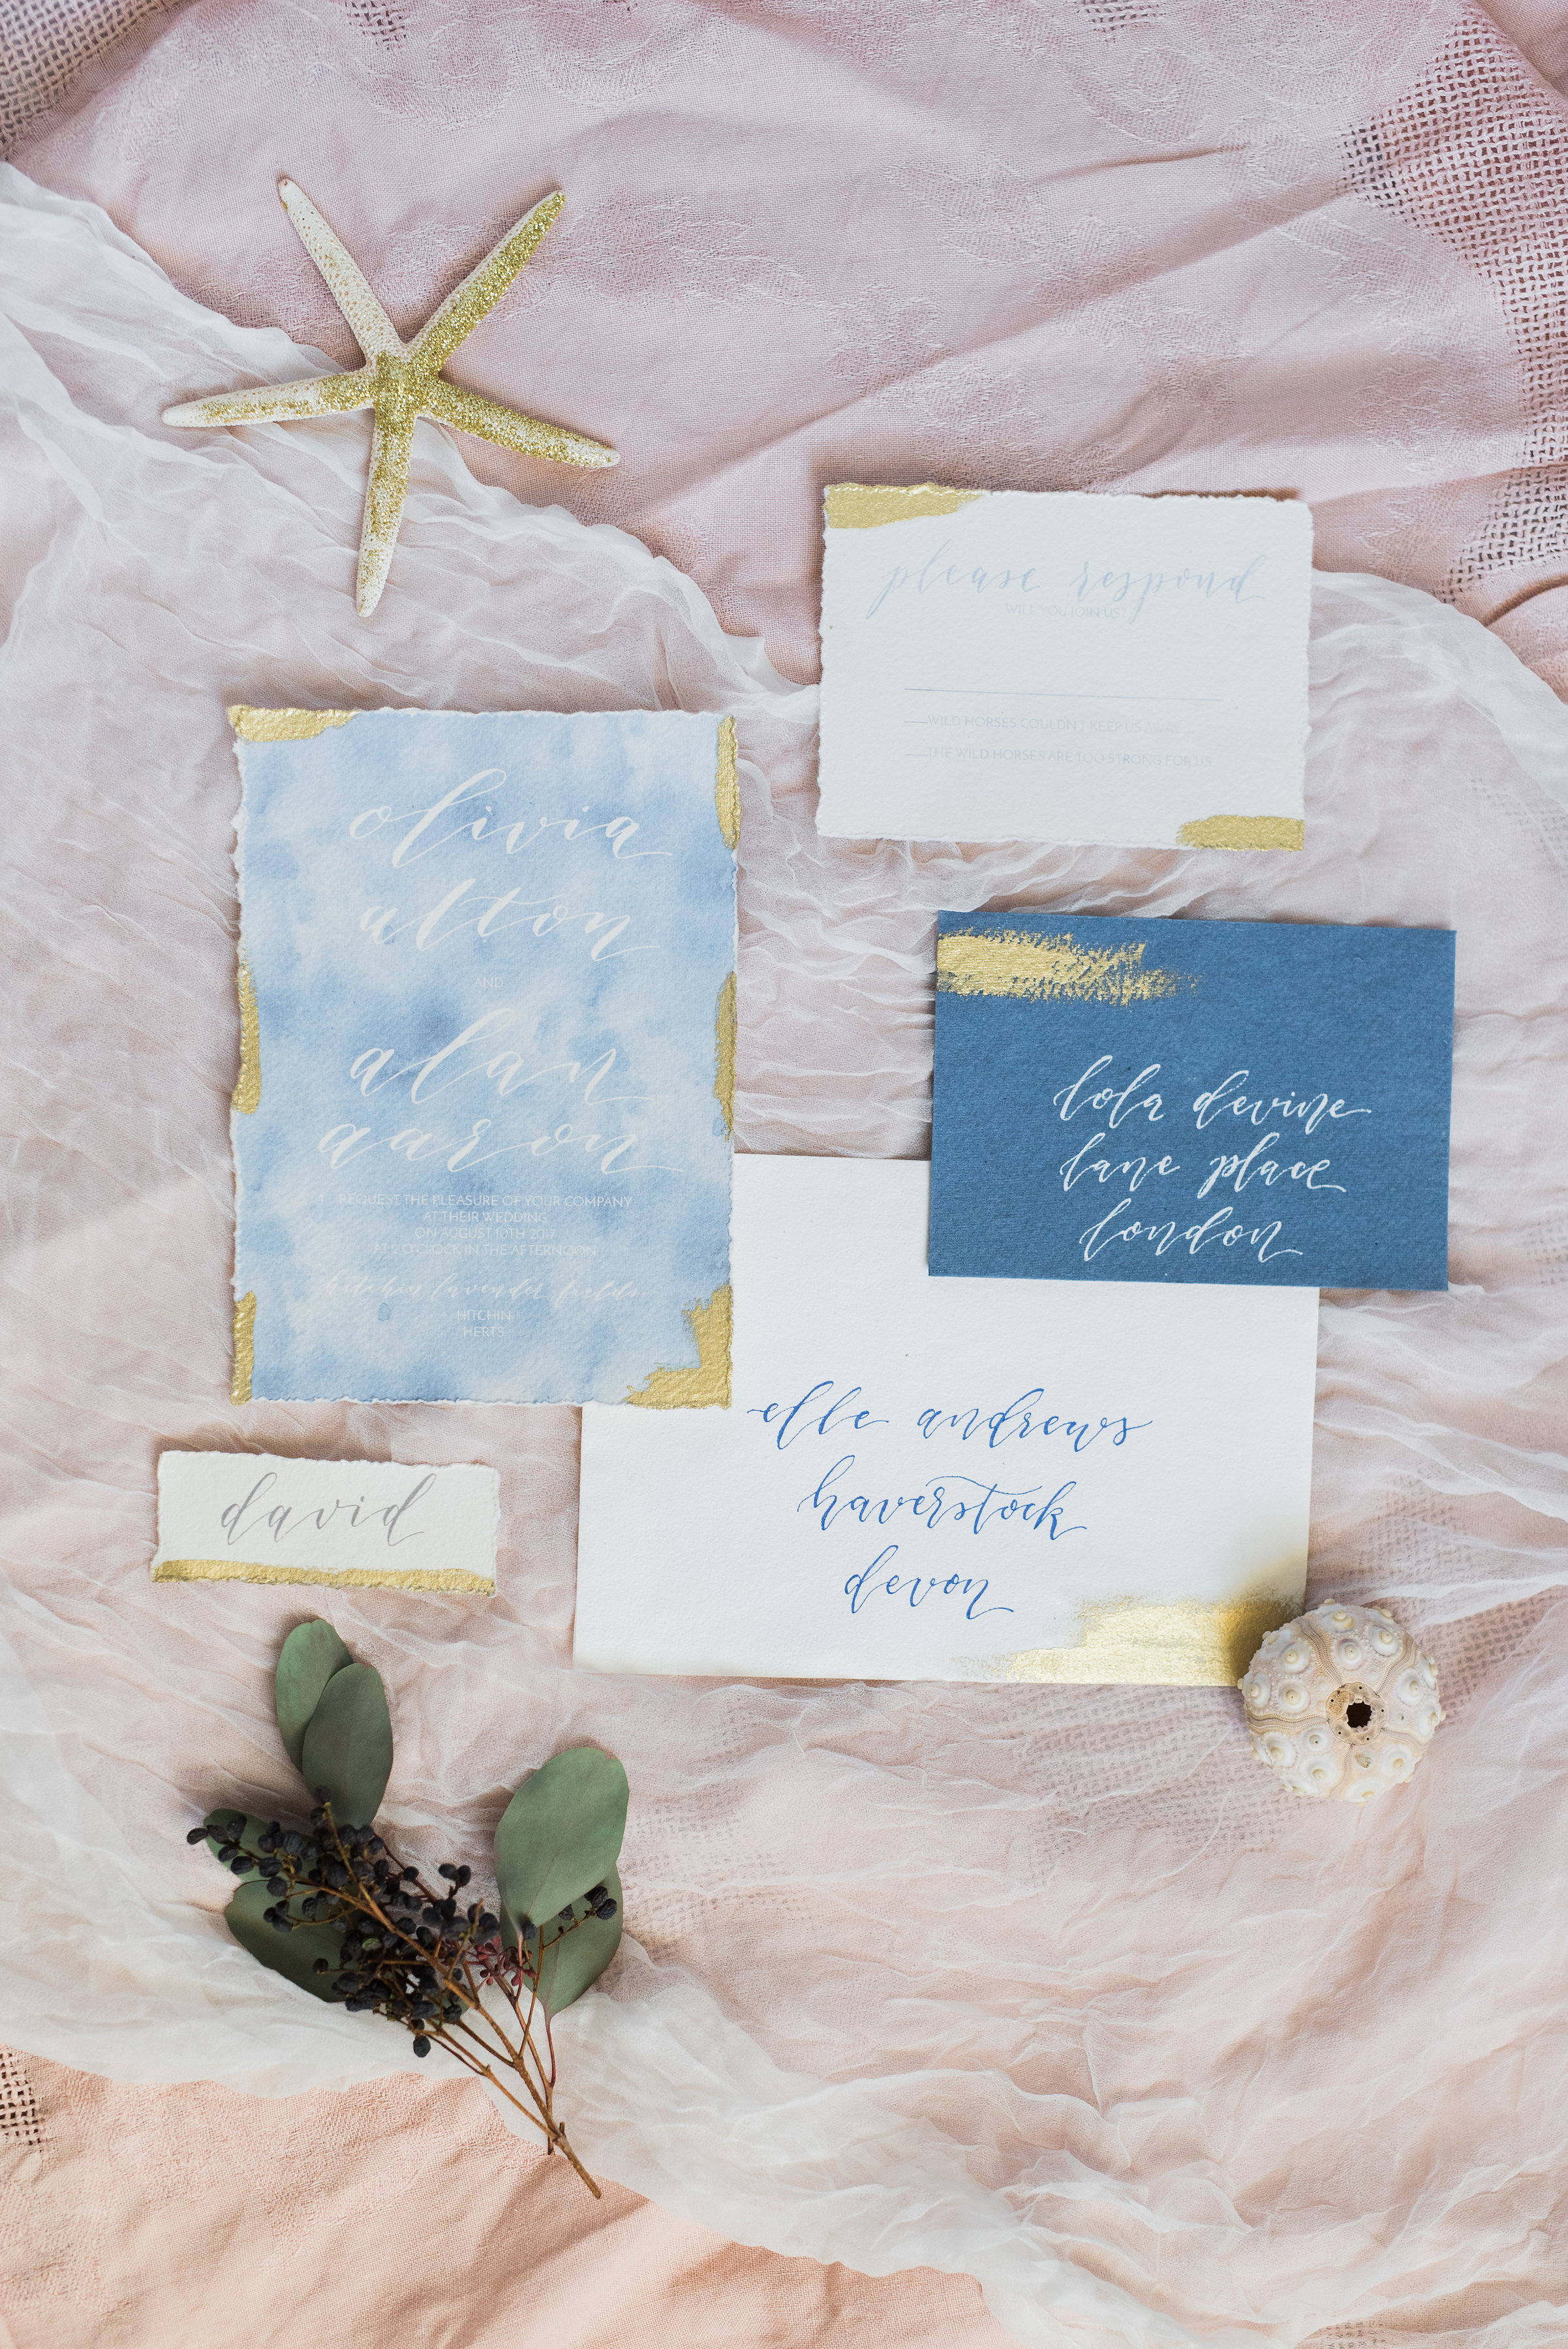 Water colour and gold leaf Modern calligraphy invitation on handmade cotton rag paper by Studio Oudizo, Cheltenham